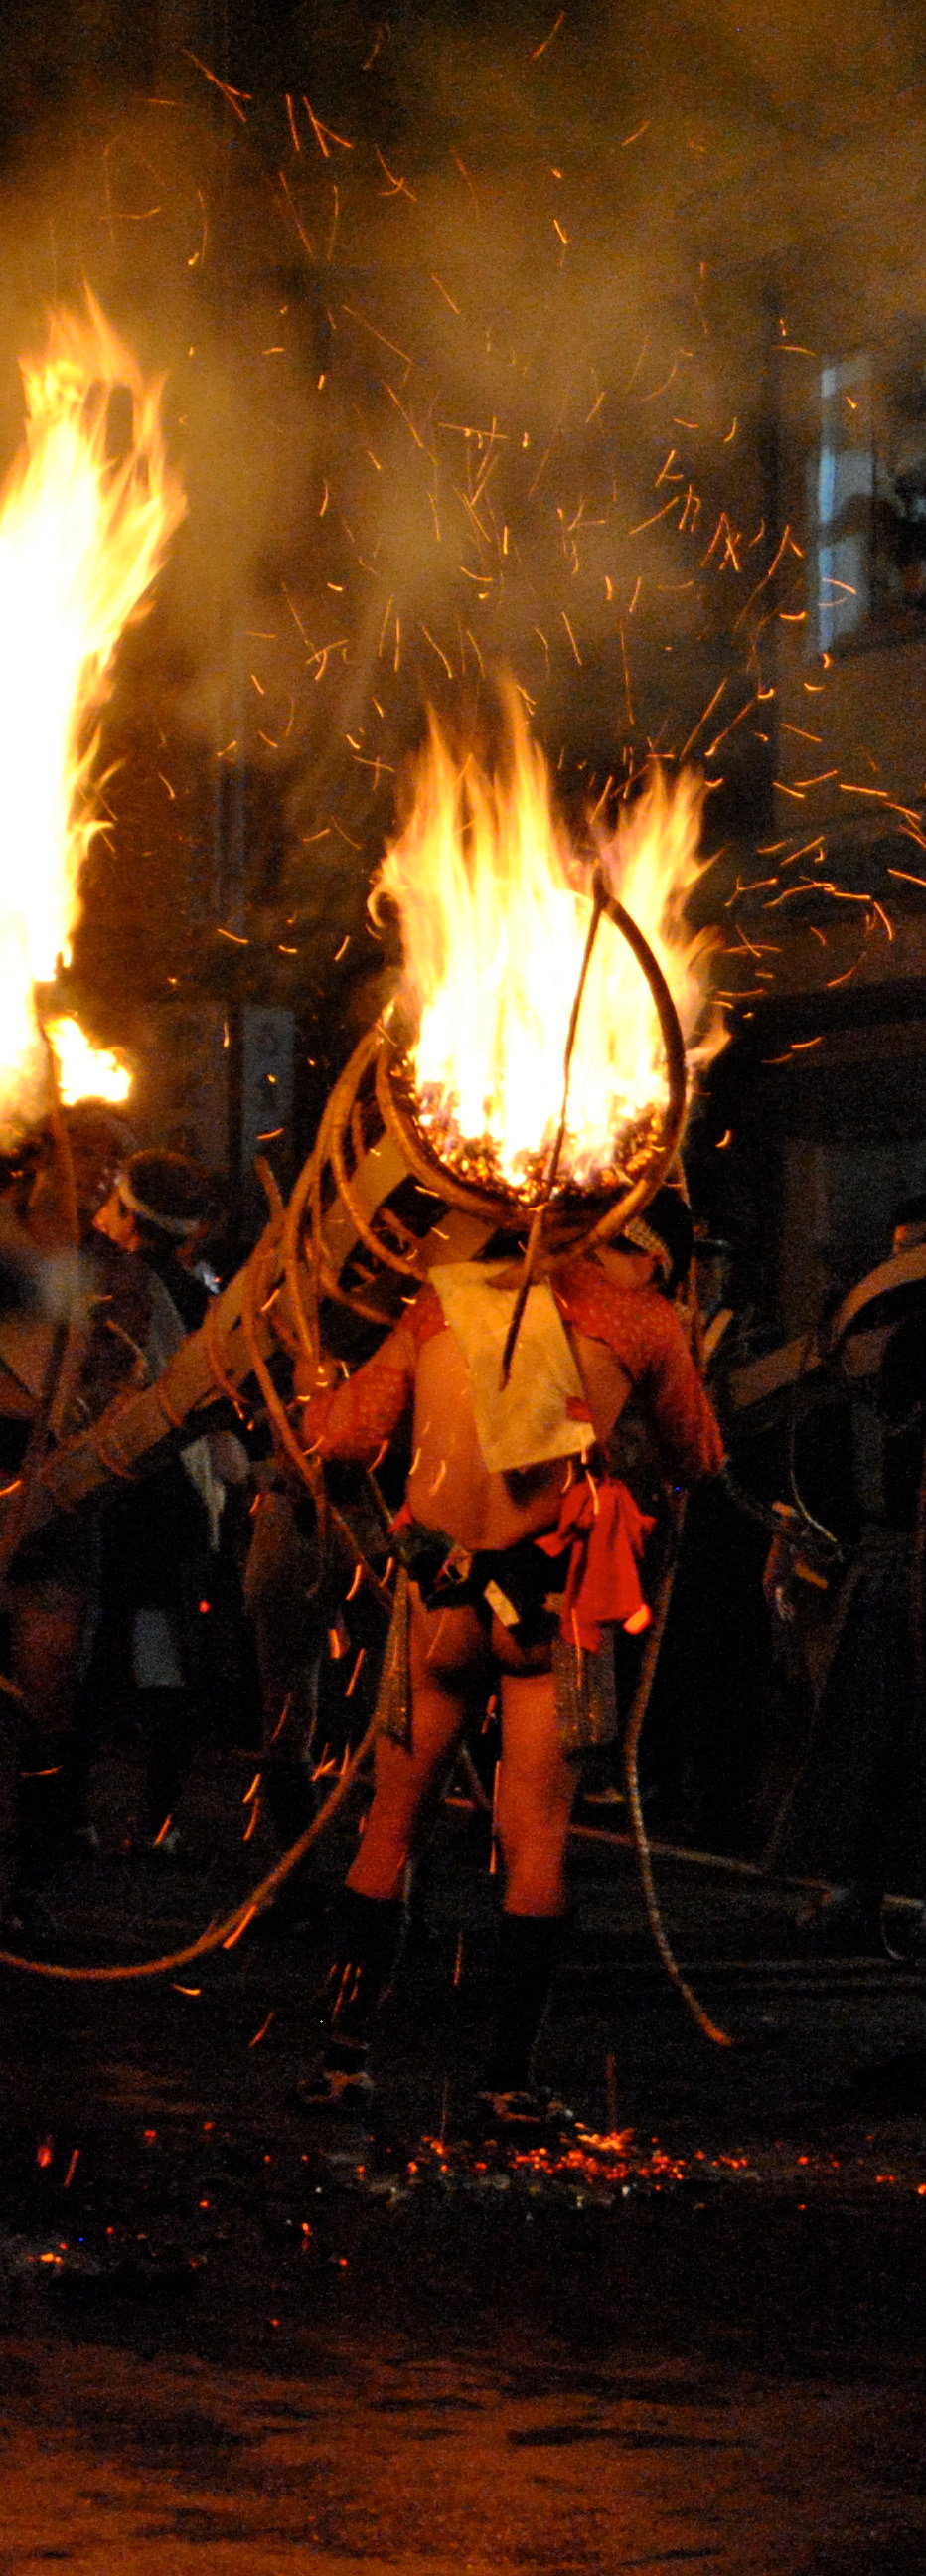 Kurama No Hi Matsuri- an annual fire festival that takes place on October 22 each year in Kyoto, Japan